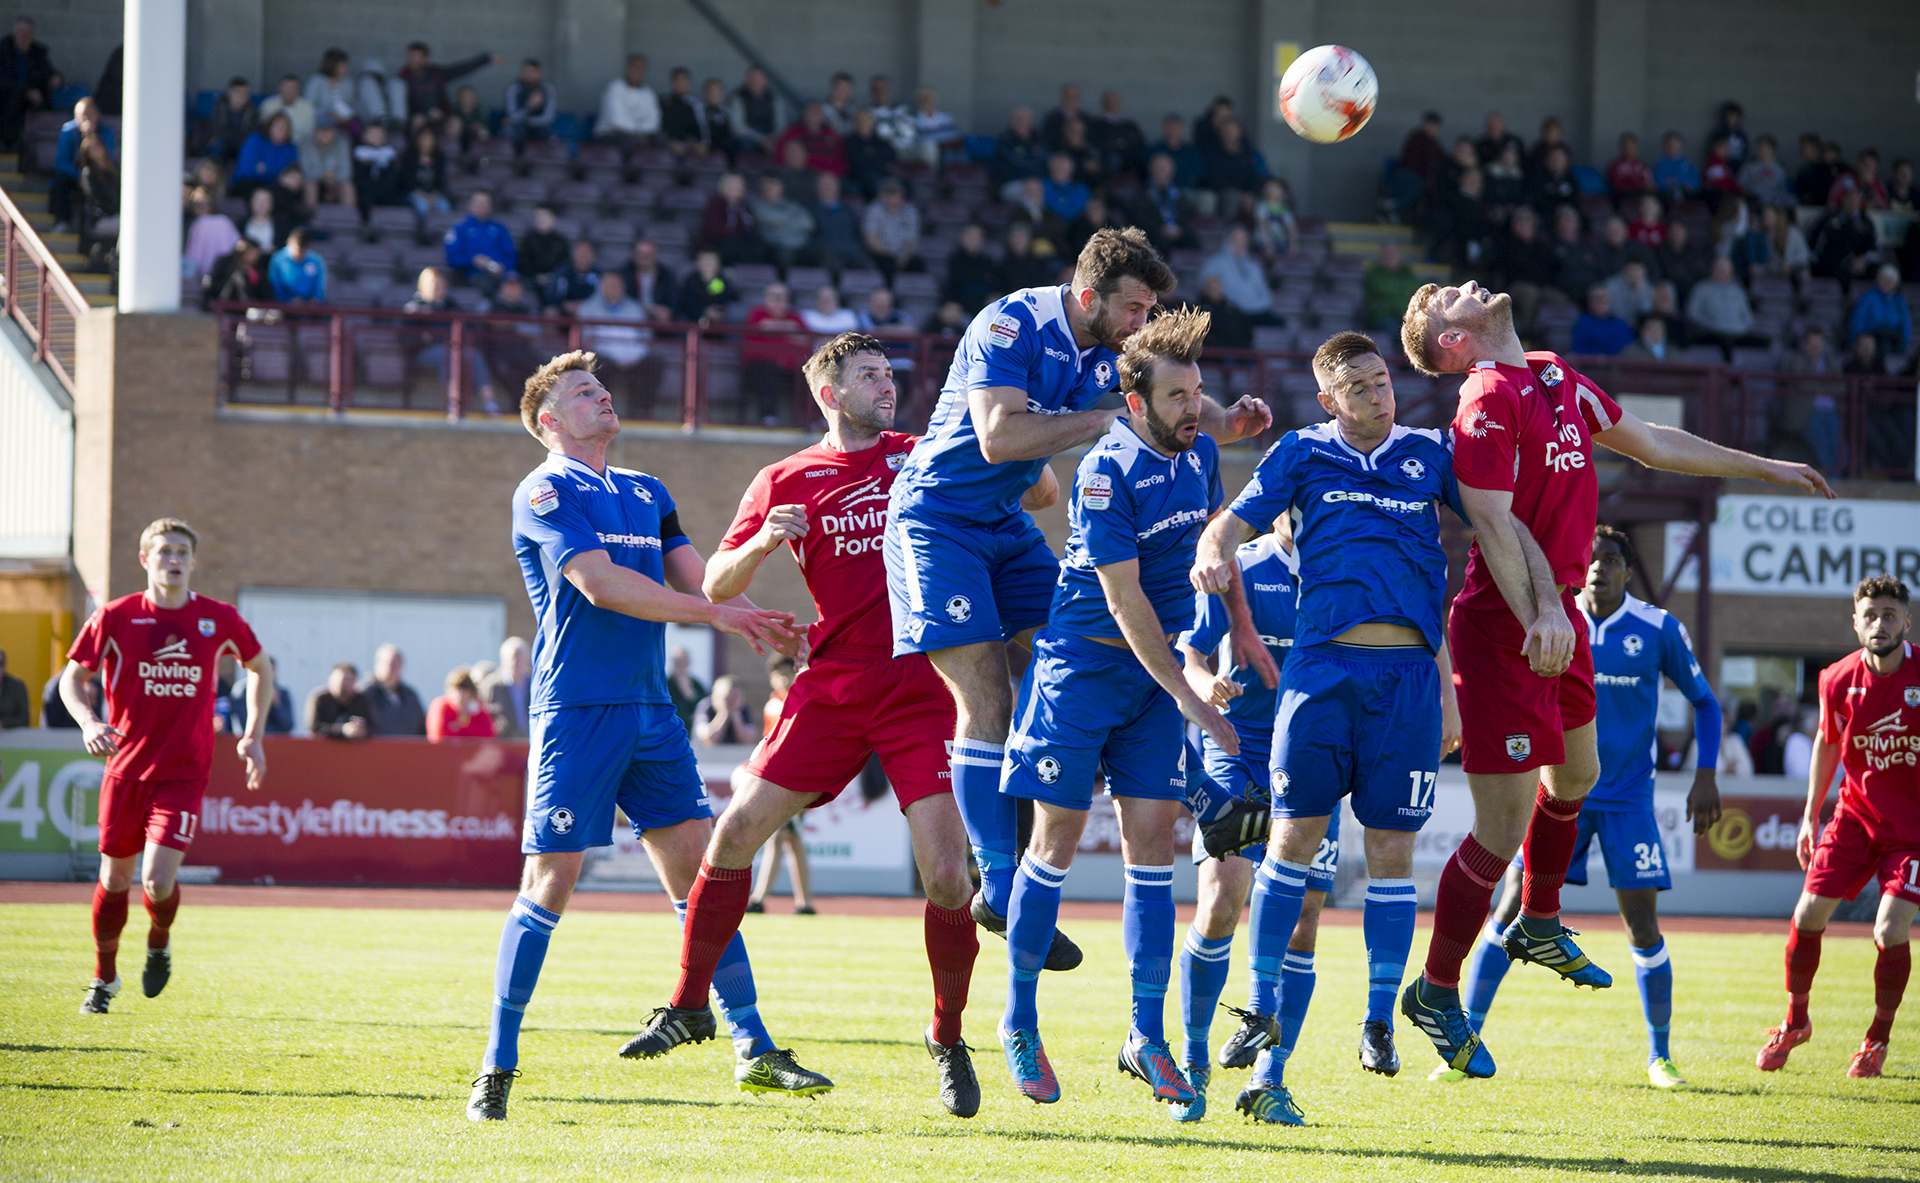 The Nomads' Jay Crowther challenges for the ball in front of a record Deeside Stadium crowd